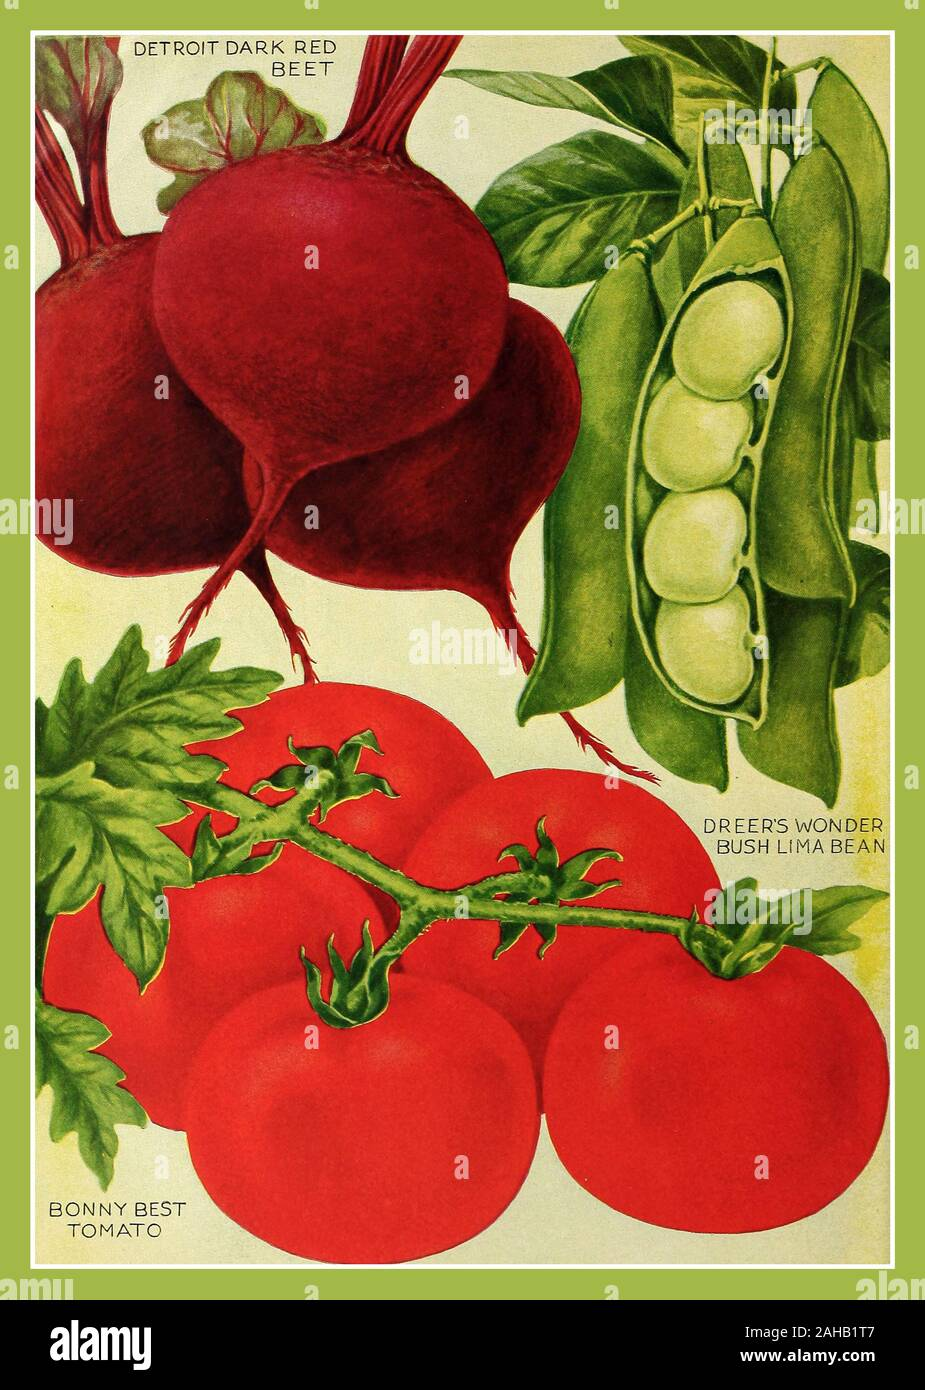 1920 S Vintage Food Advertising Page Poster Vegetable Seed Catalog Illustrations Including Beets Tomato Bush Lima Bean 1921 Henry A Dreer Usa Colour Lithograph Stock Photo Alamy